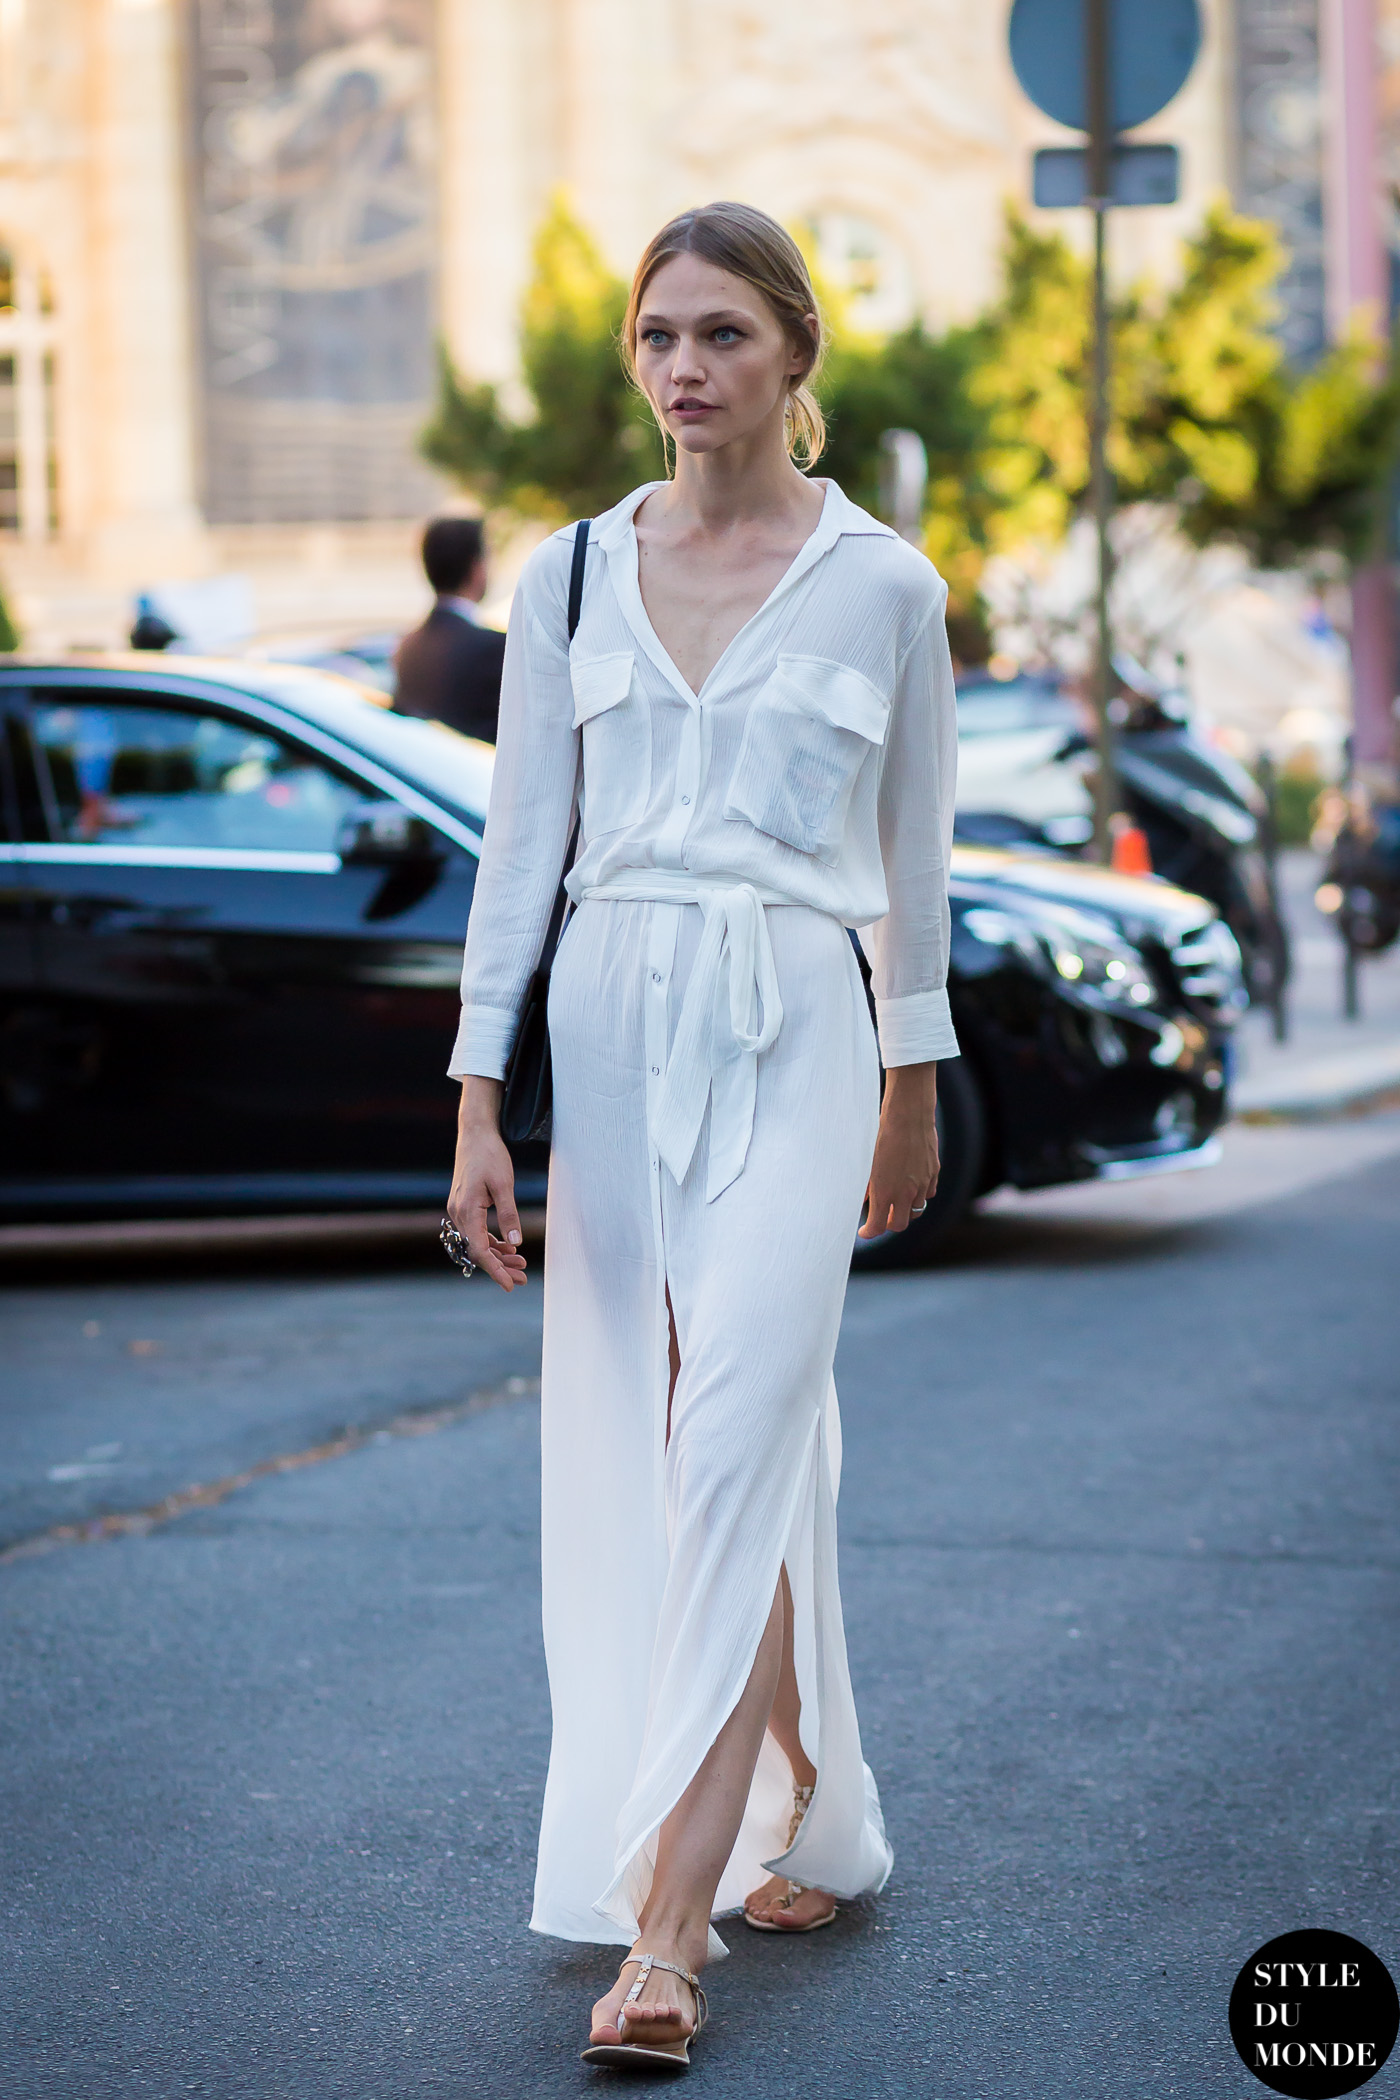 Sasha-Pivovarova-by-STYLEDUMONDE-Street-Style-Fashion-Photography_MG_5945